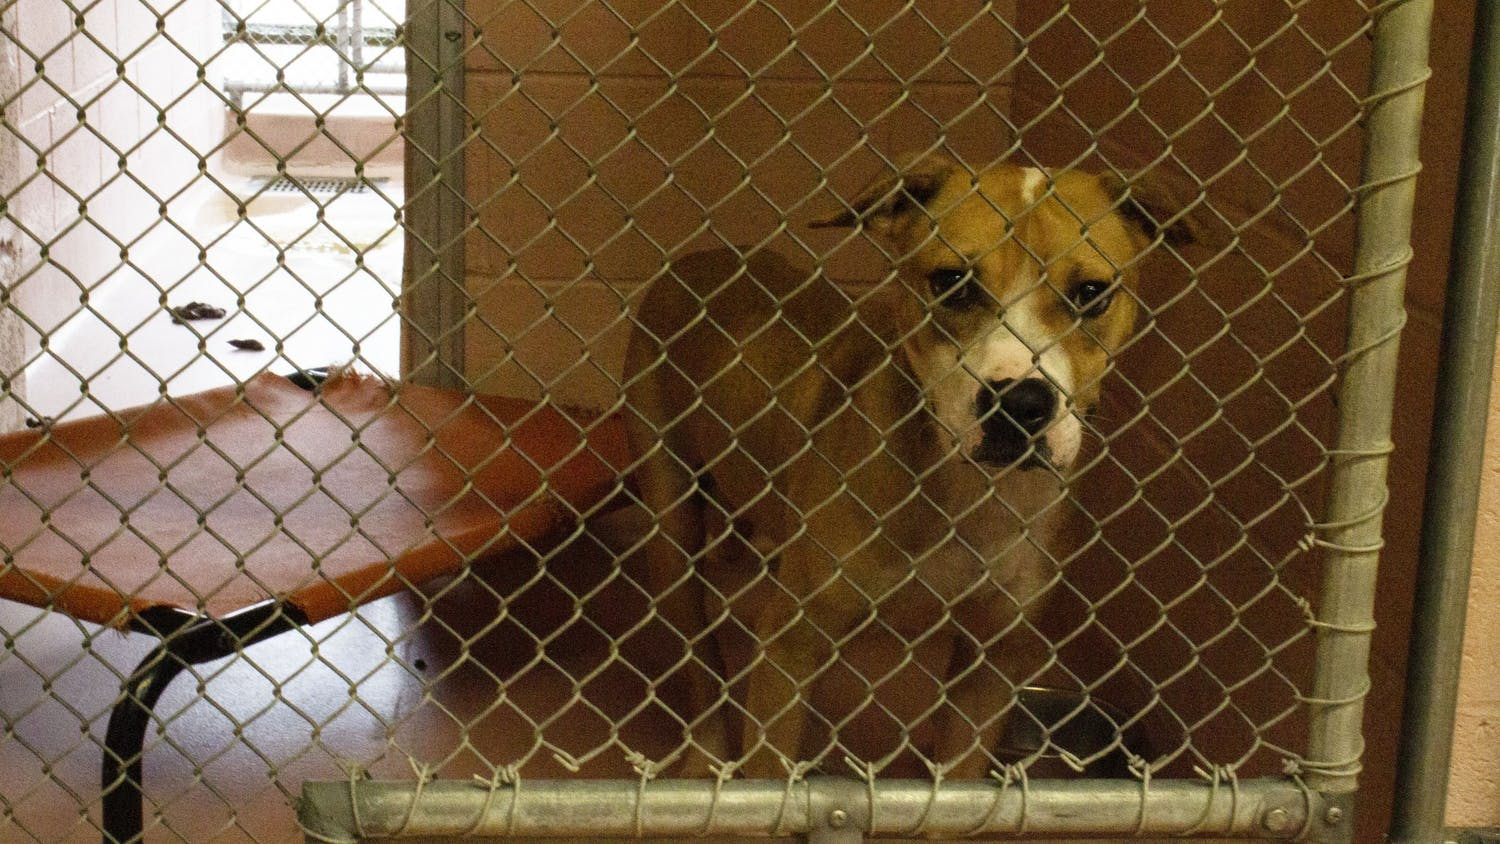 A dog sits in his kennel at the City of Columbia Animal Services on Sept. 24, 2020.